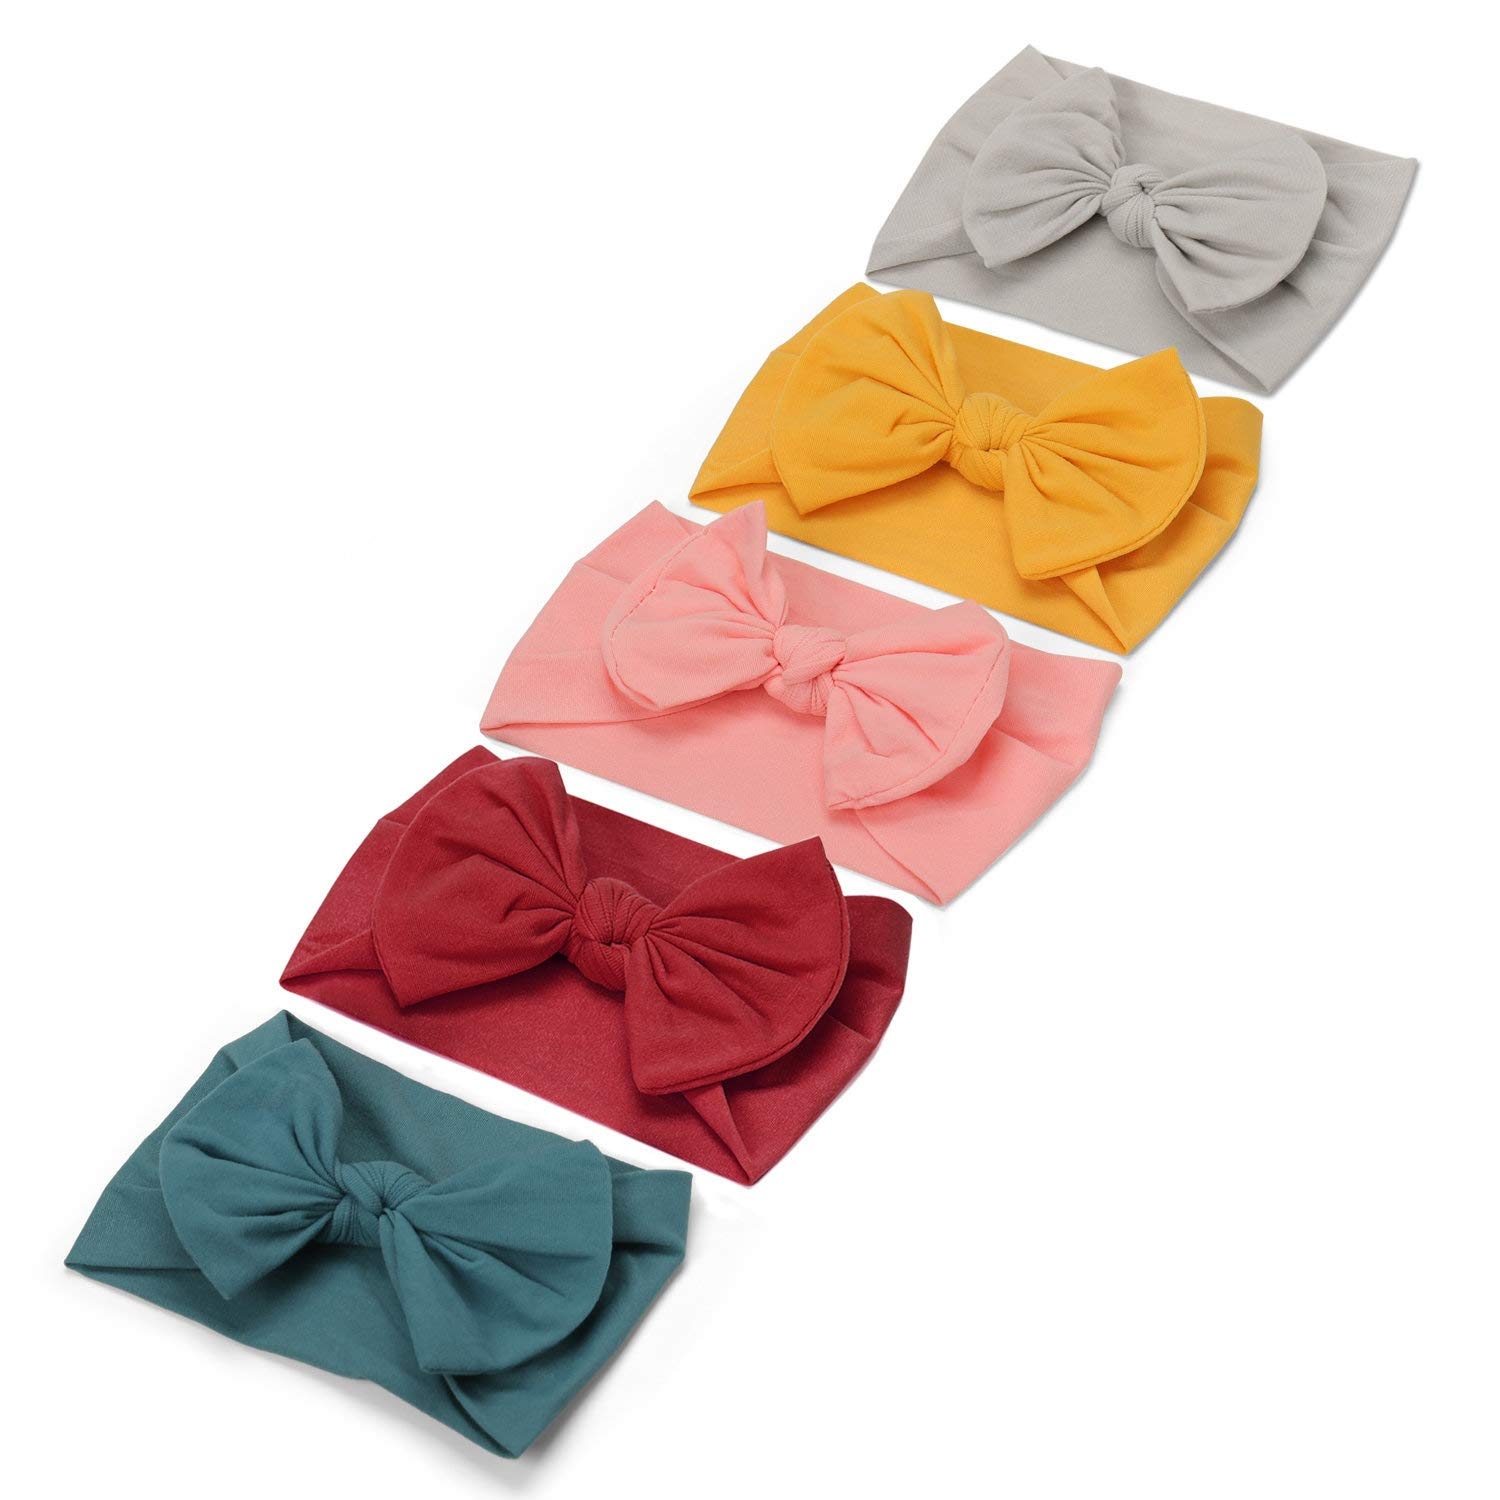 Baby Girl Headbands Newborn Hairbands-Infant Soft Knitting Headwraps Toddler Bowknot Knotted Hair Accessories, Pack of 3